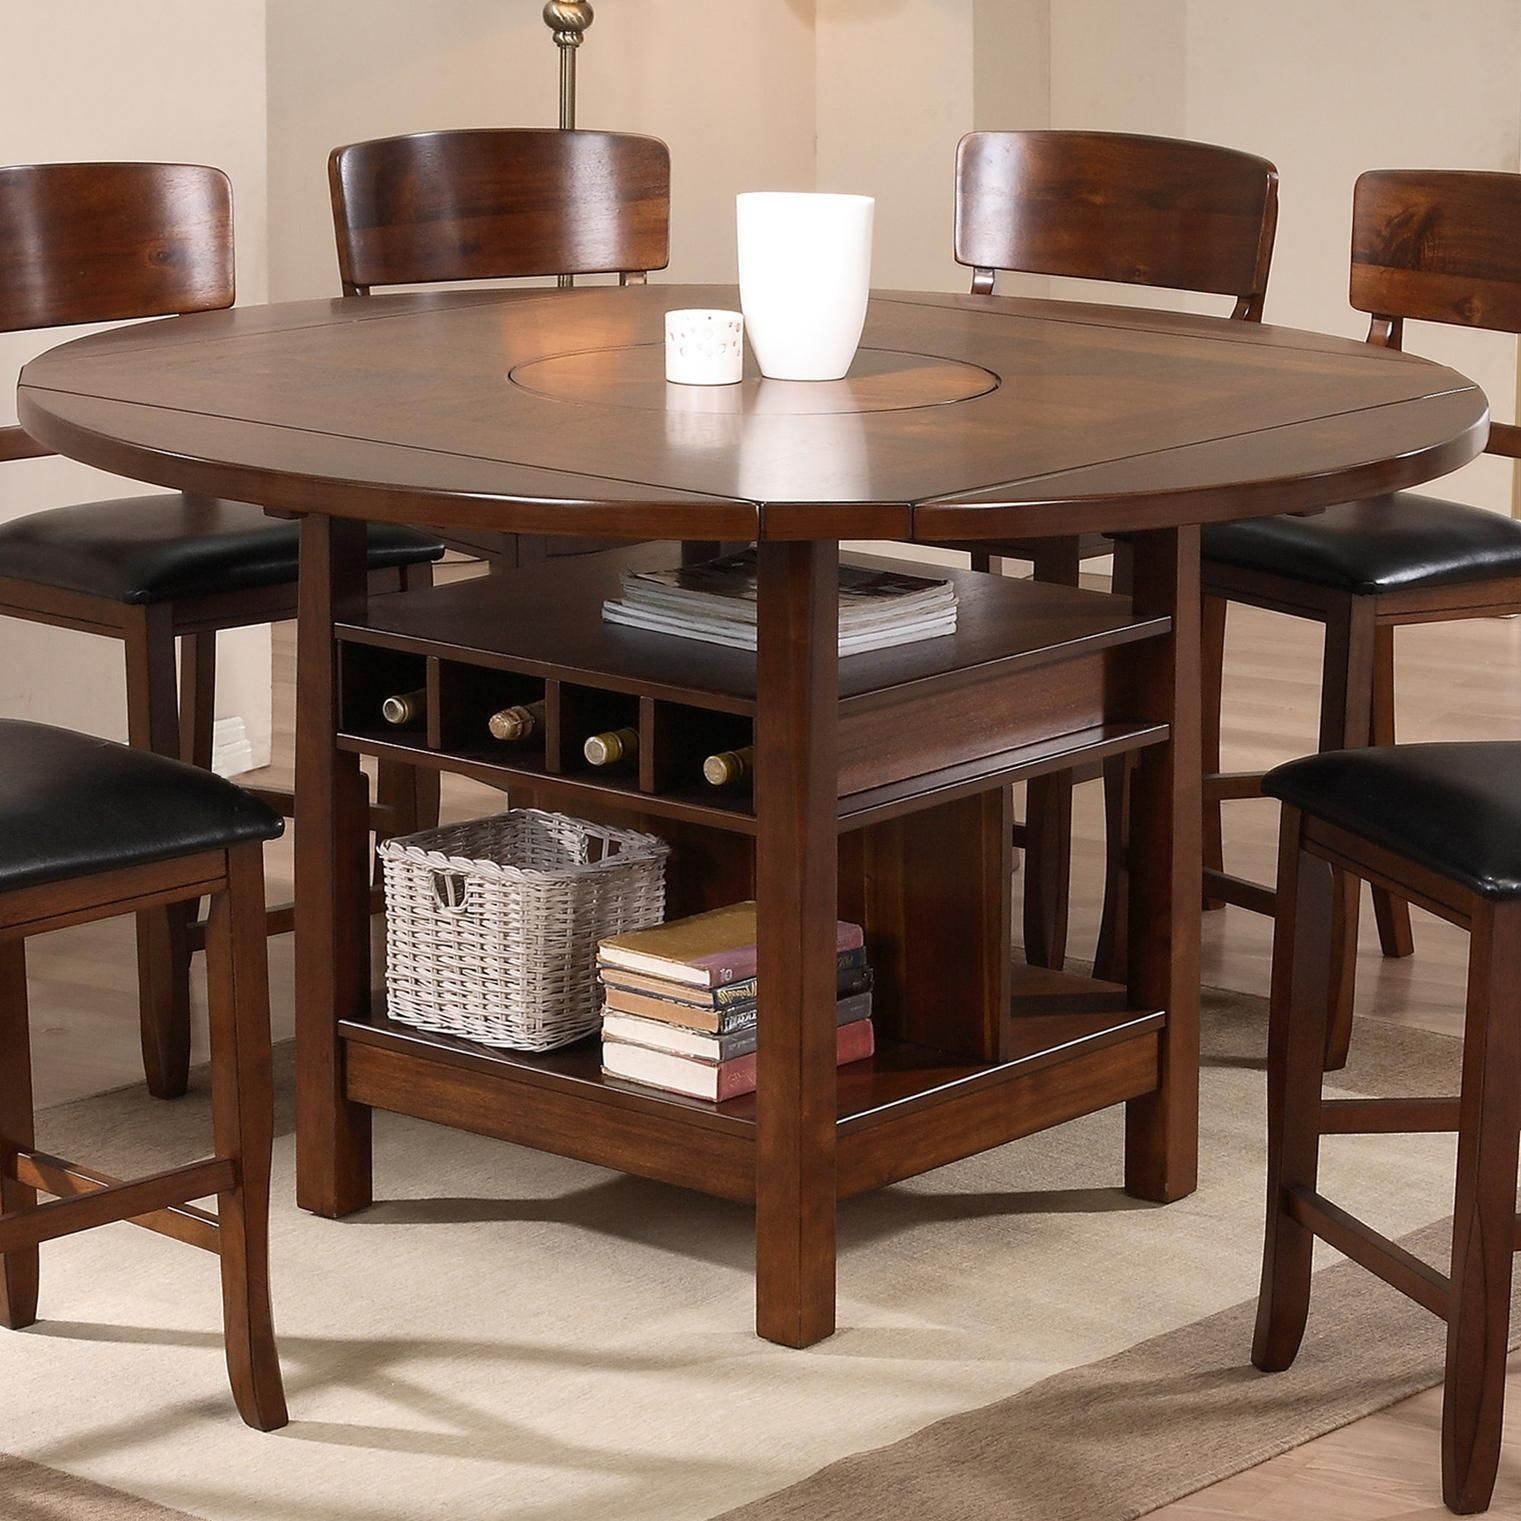 Charmant Counter Height Round Pub Table 8